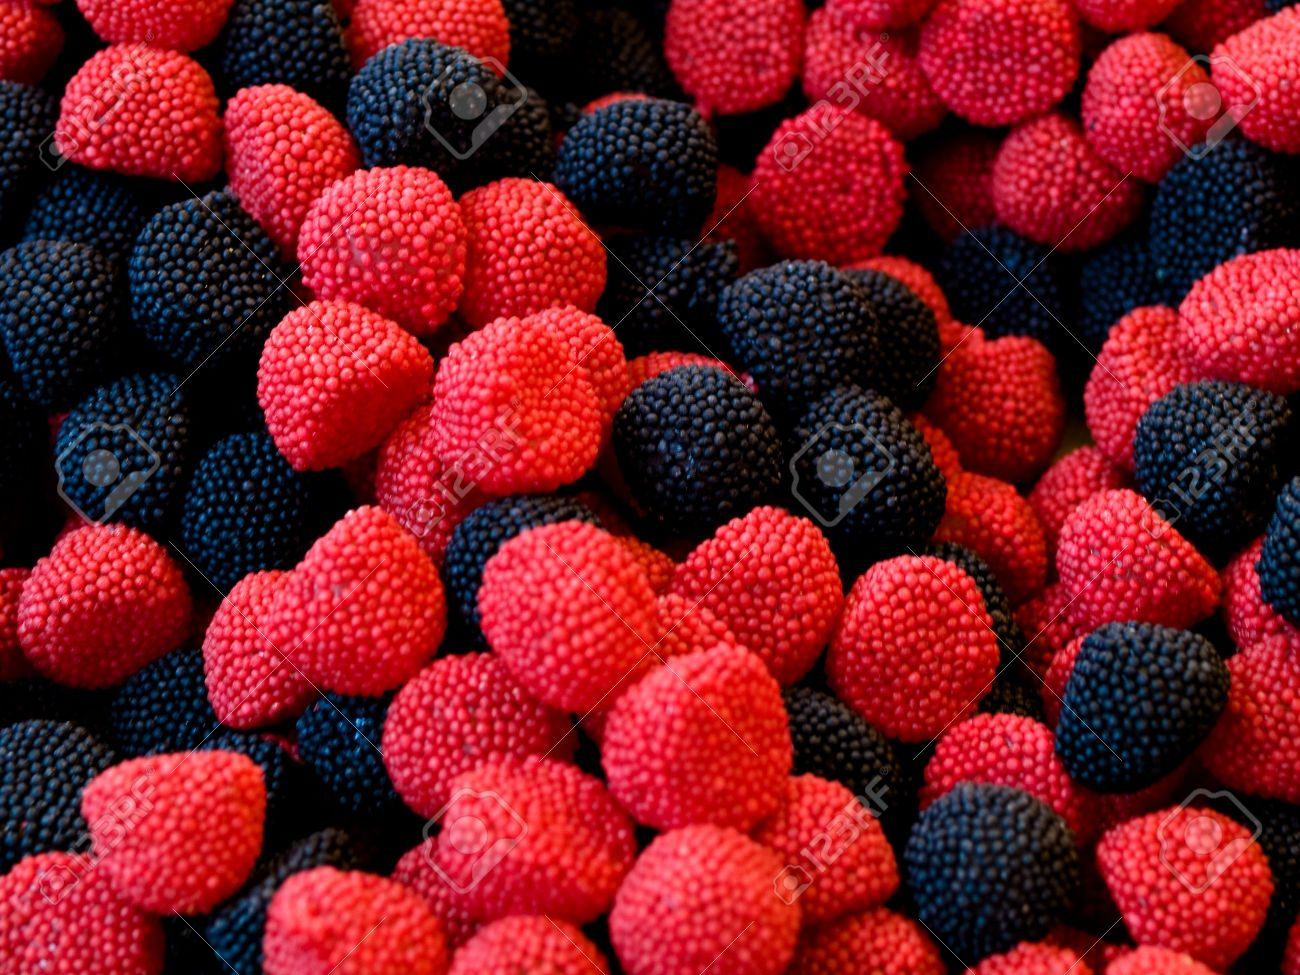 macro of black and red candy fruits stock photo picture and